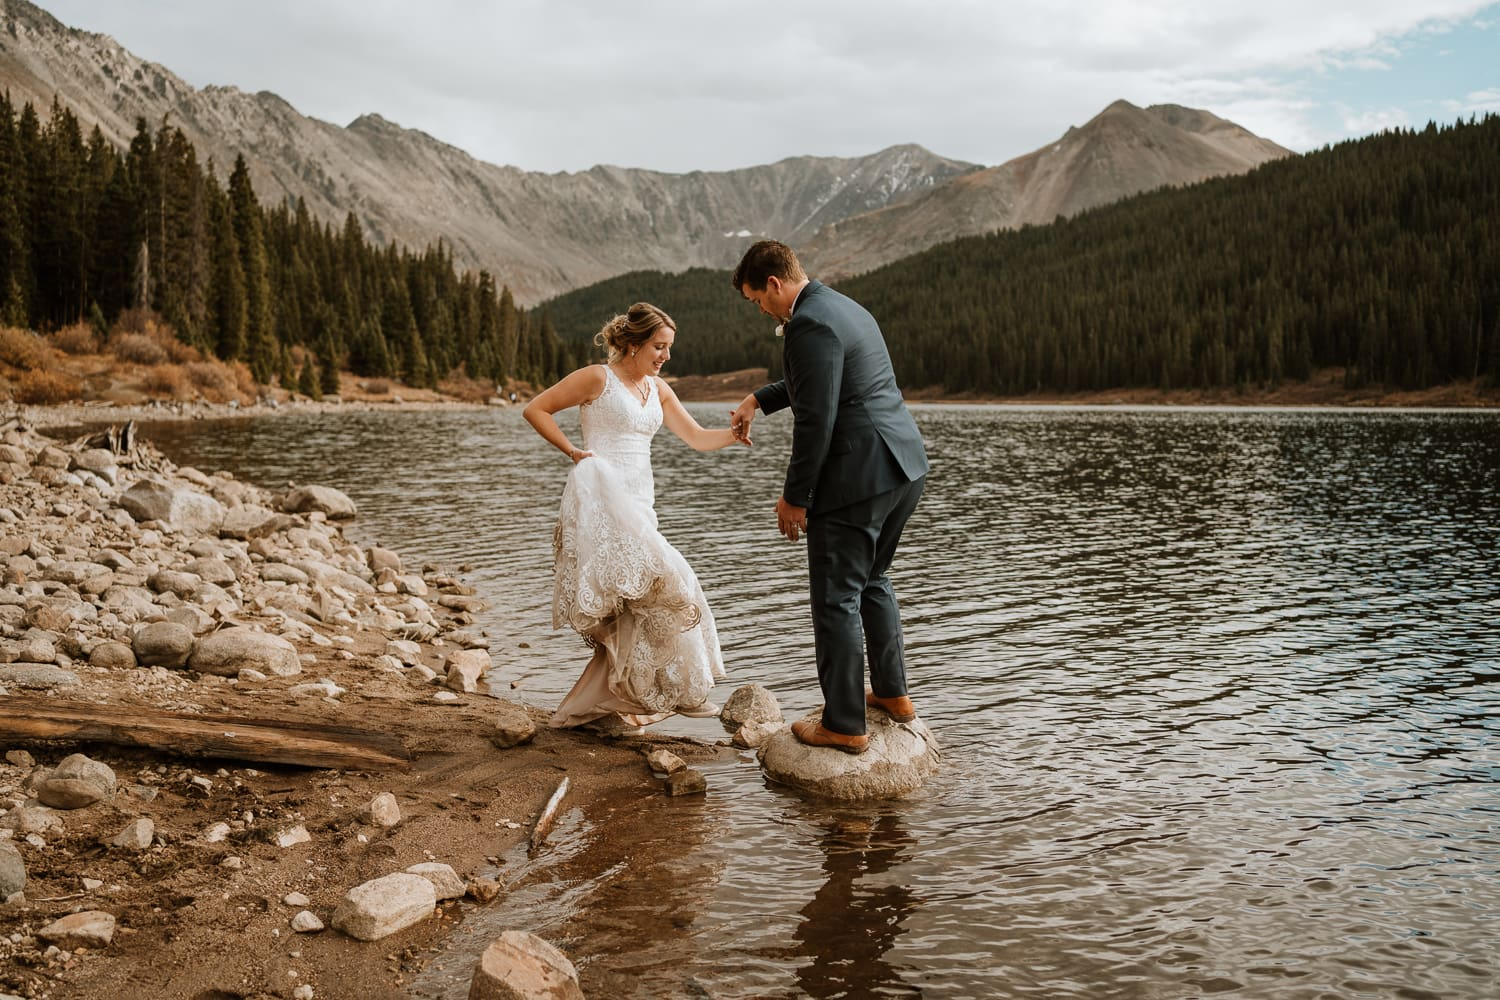 Bride and groom hop onto a rock for their couples portraits during their adventurous Colorado elopement